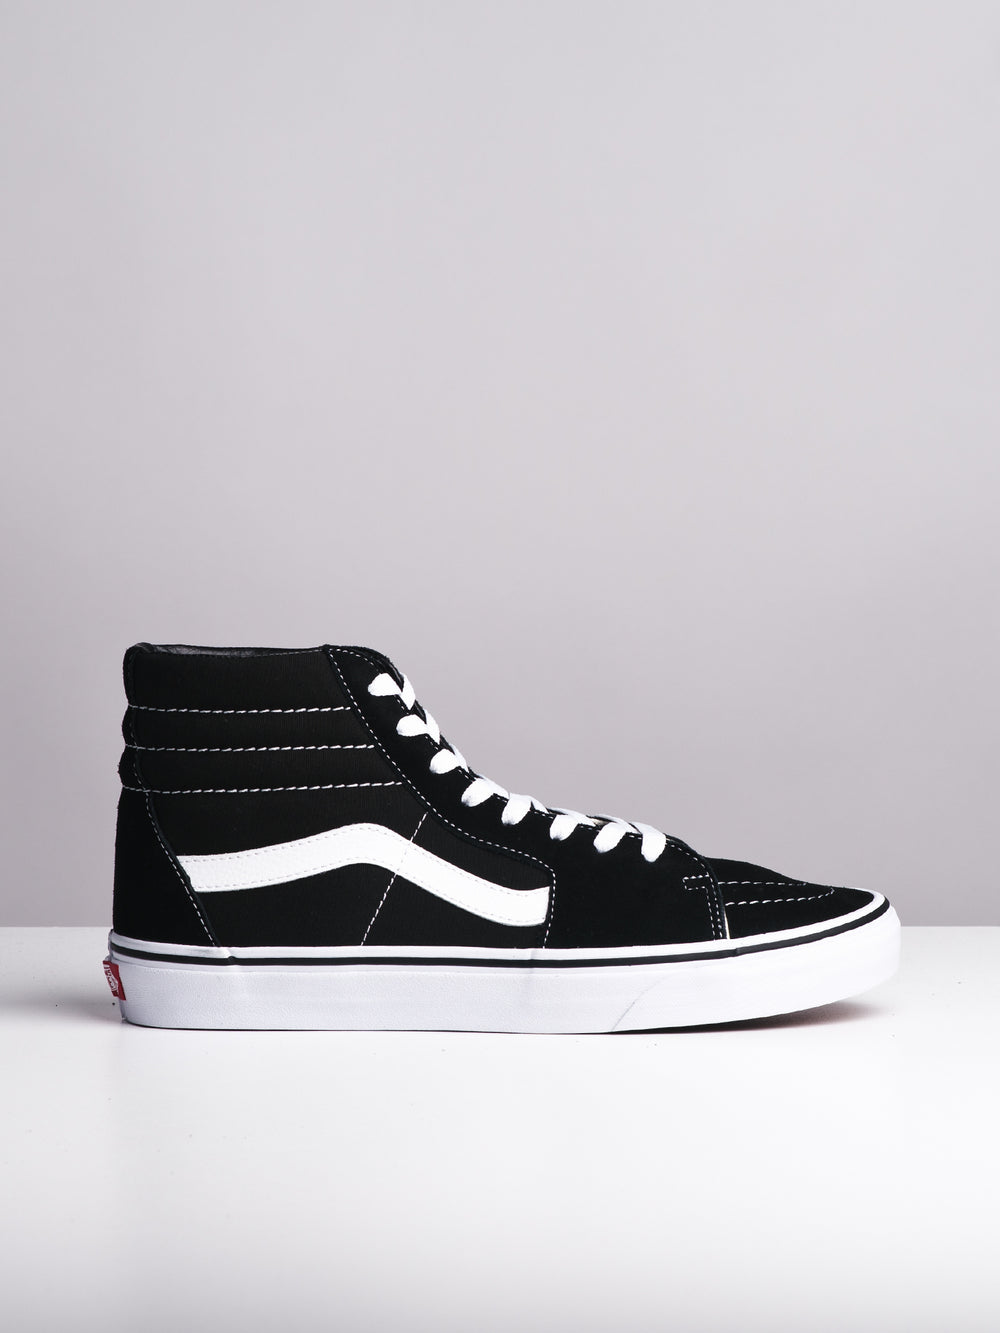 MENS SK8 HI BLACK/WHITE SNEAKERS